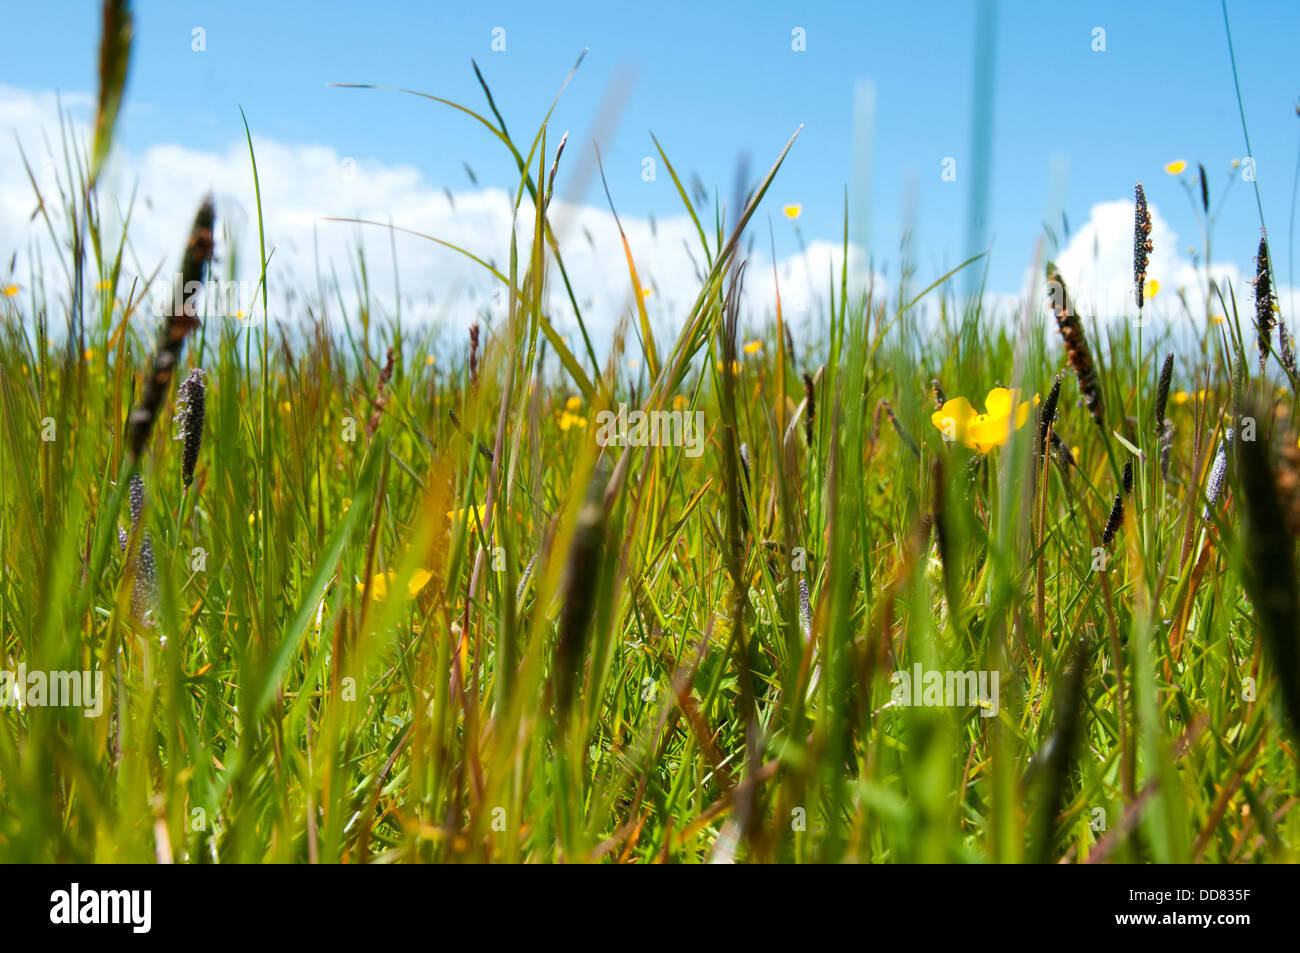 Windmill farm on the Lizard Peninsula, Cornwall. A worms eye view of a meadow grassland vegetated primarily by grass - Stock Image